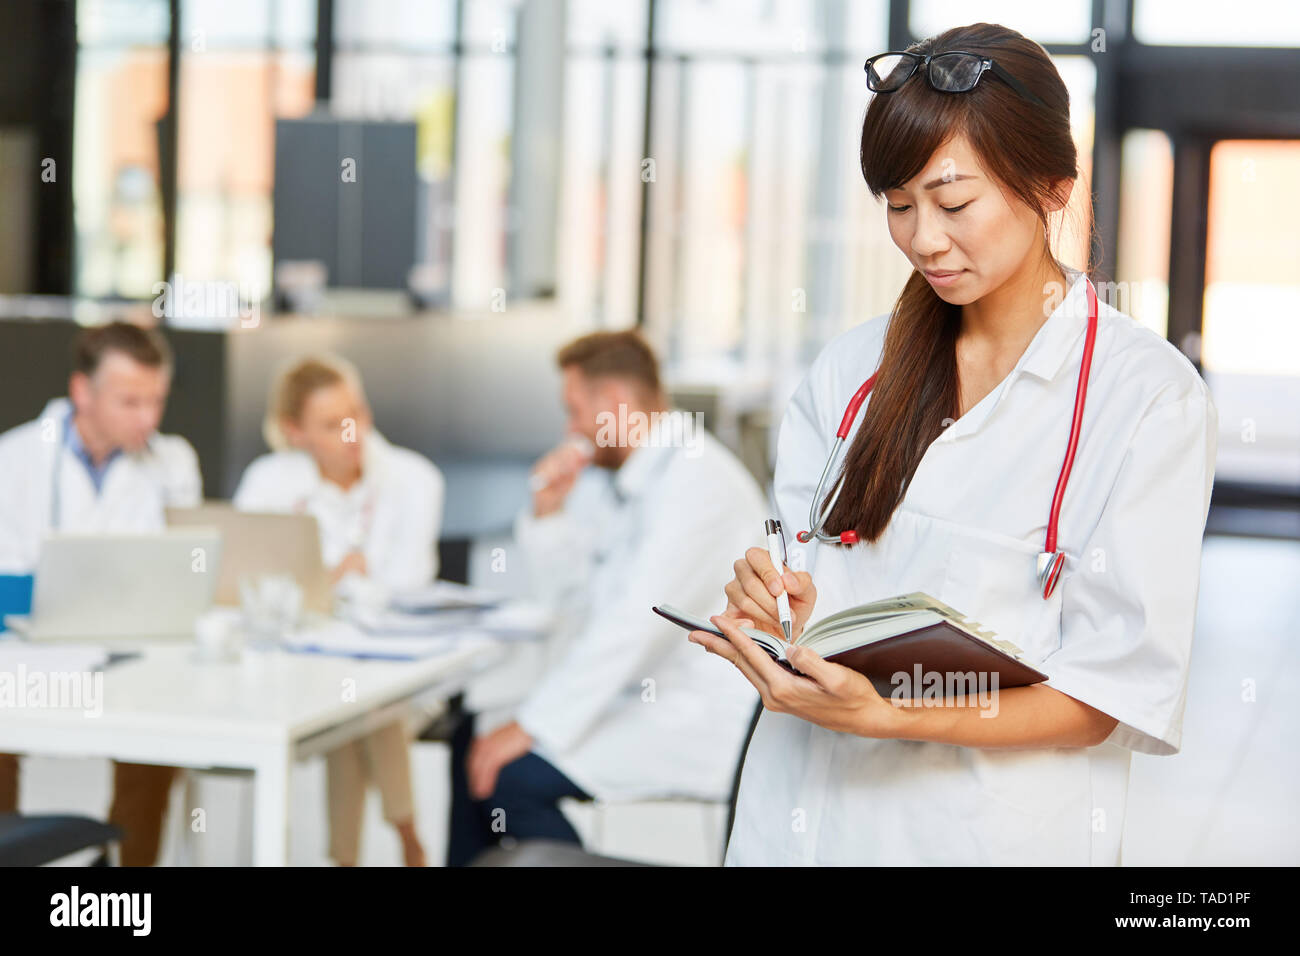 Young female doctor or nurse with calendar while scheduling in hospital - Stock Image